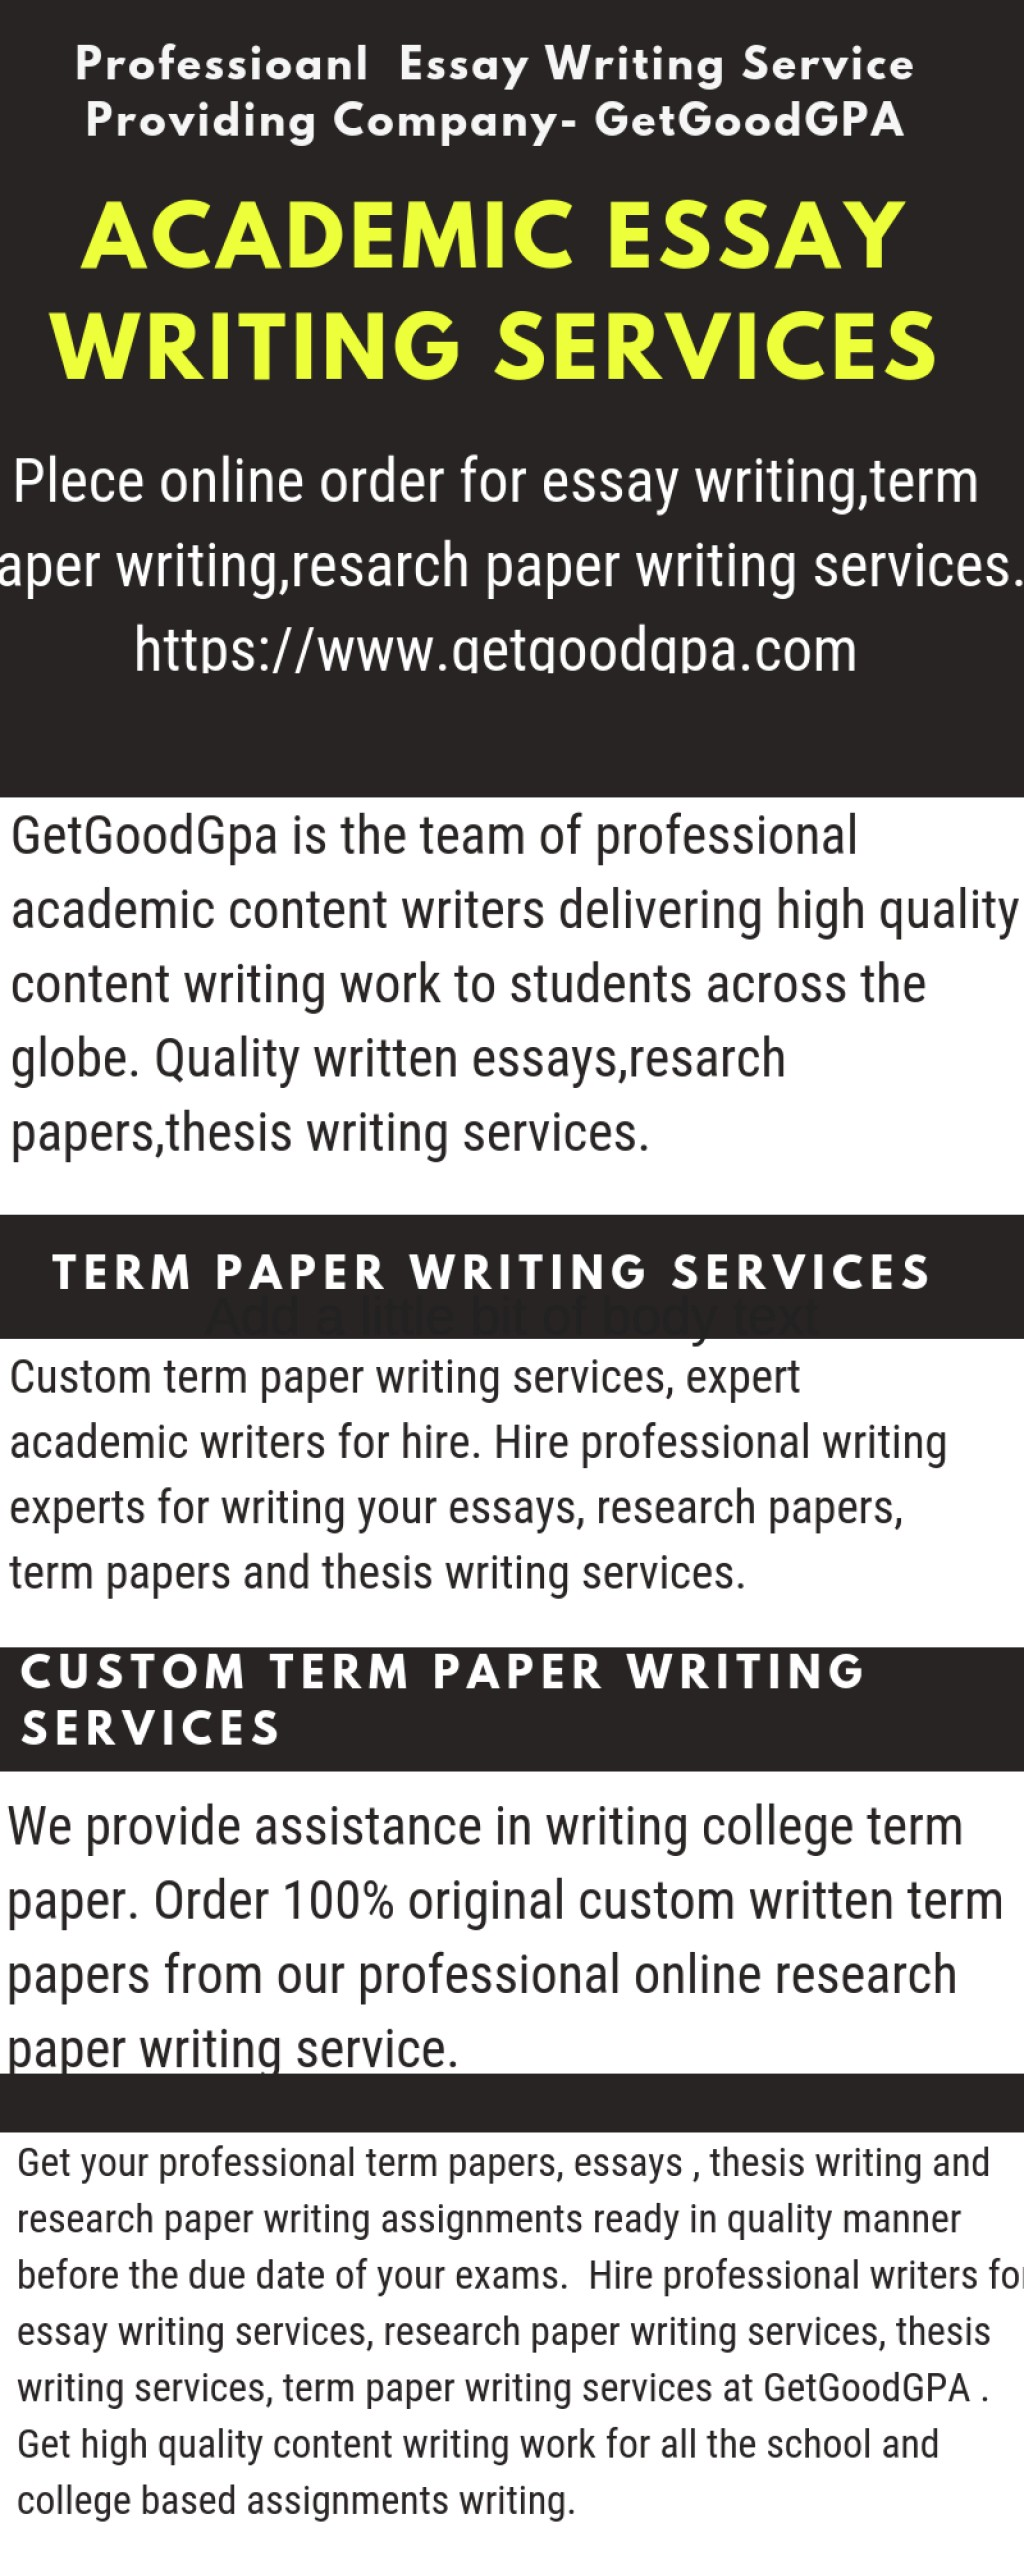 003 Research Paper Custom Term Writing Magnificent Service Services Large